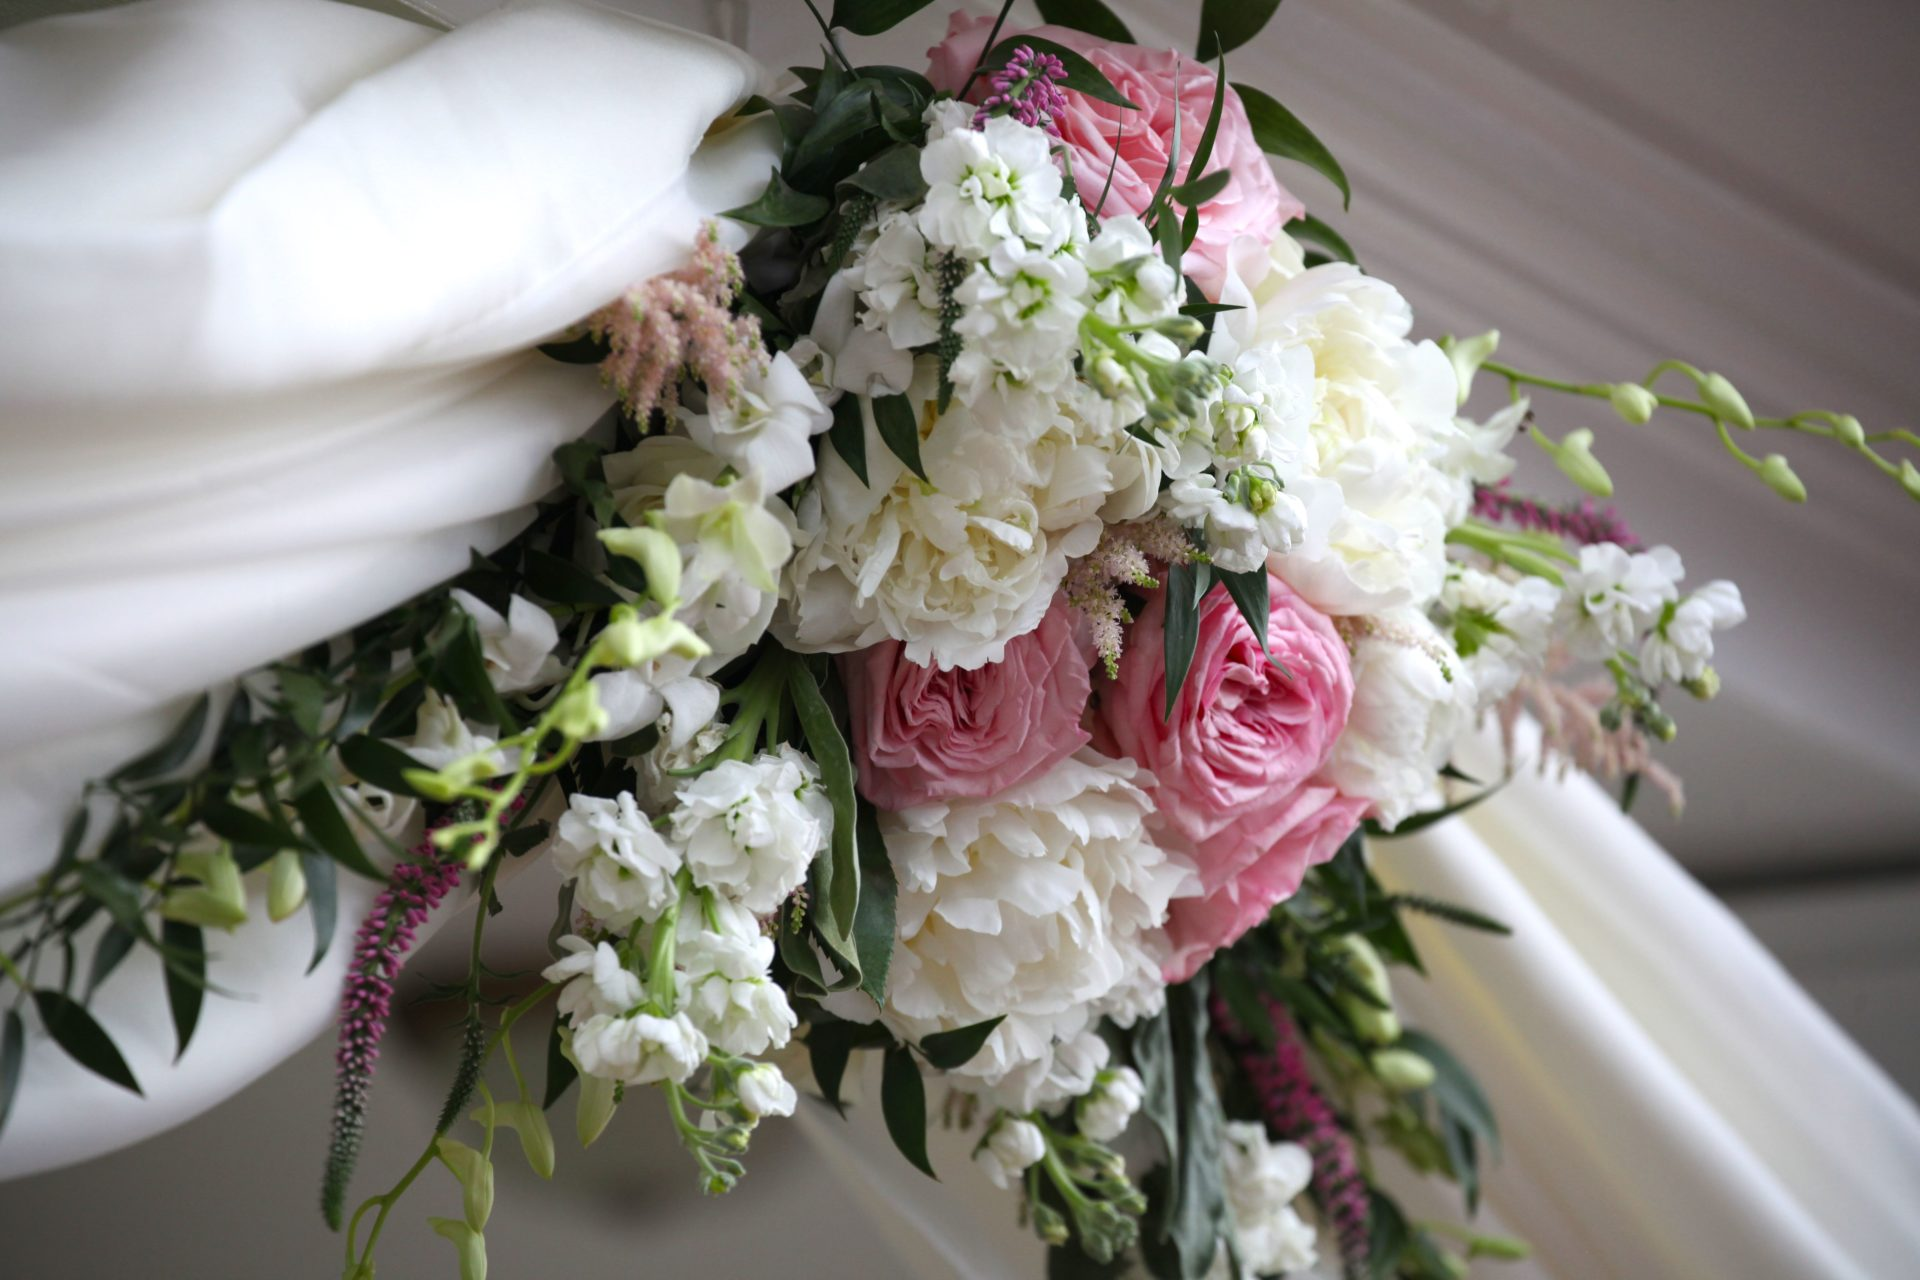 Spring wedding flower ideas, florist in Frederick Maryland for tea party theme wedding